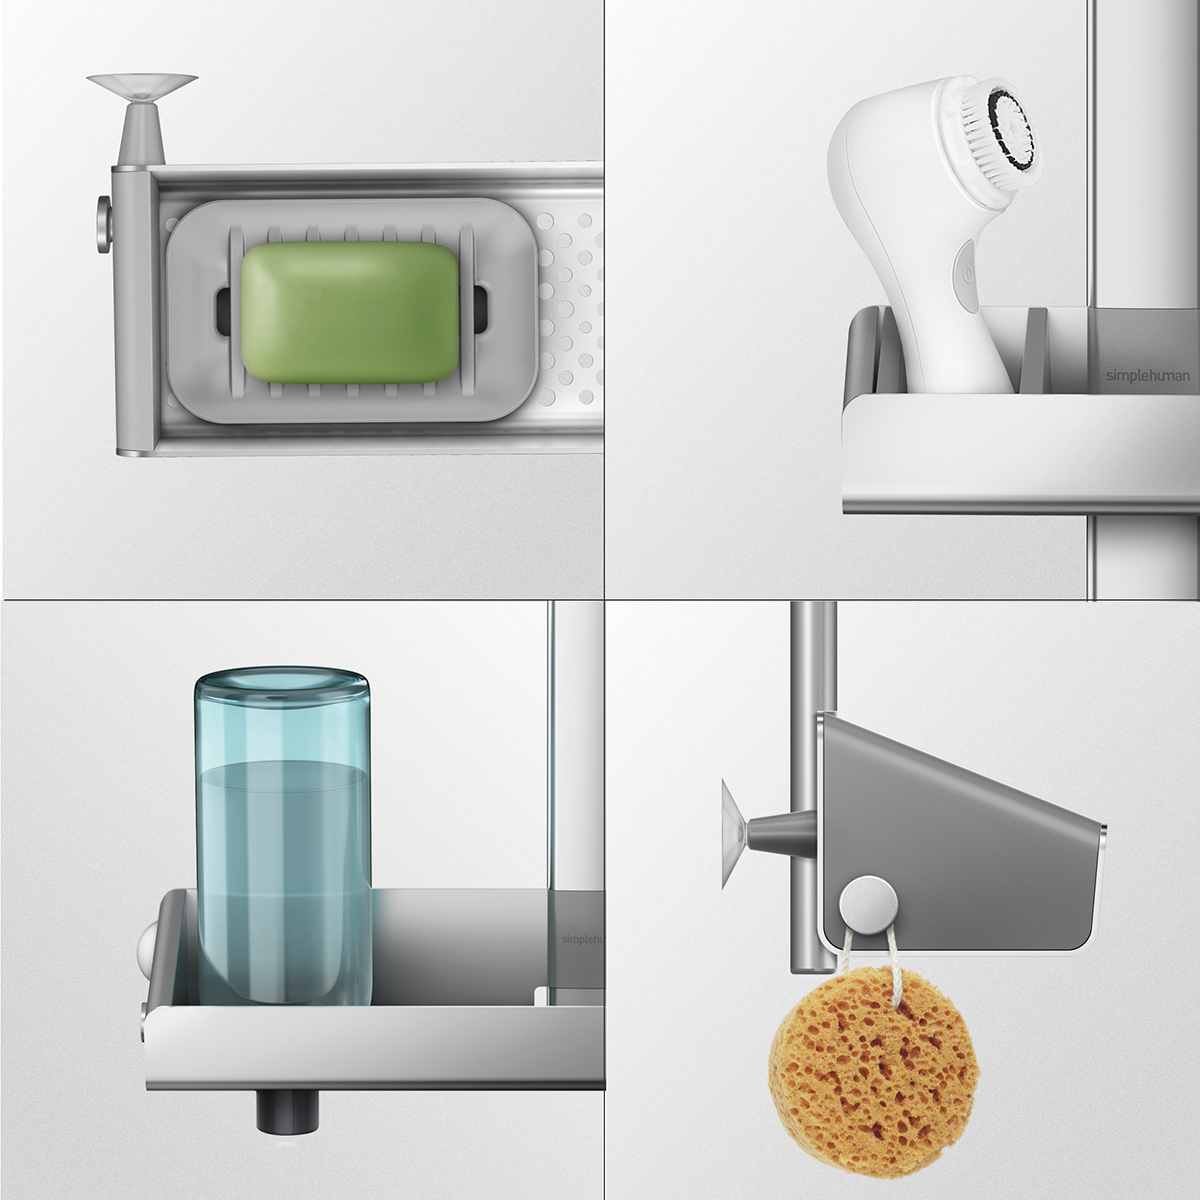 Simplehuman Shower Caddy | Shower Caddie | Shower Organizers